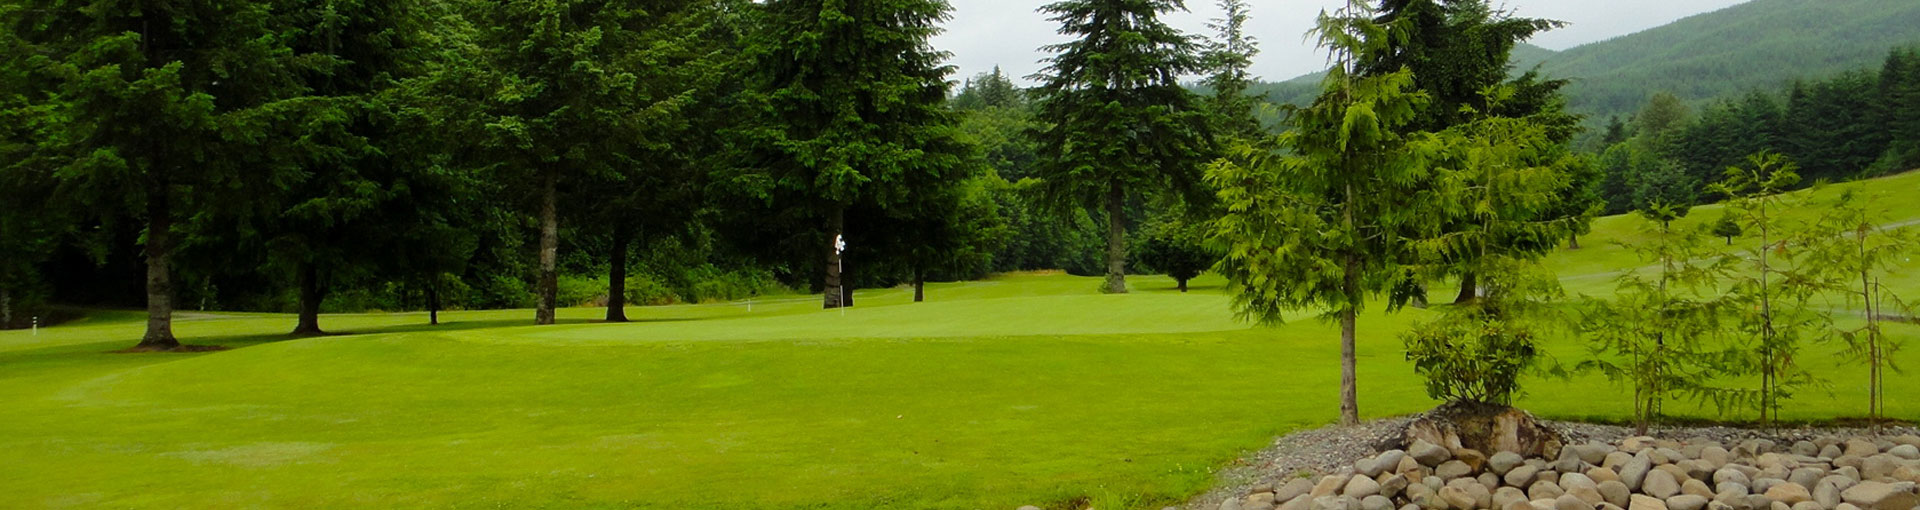 wildwood golf course portland